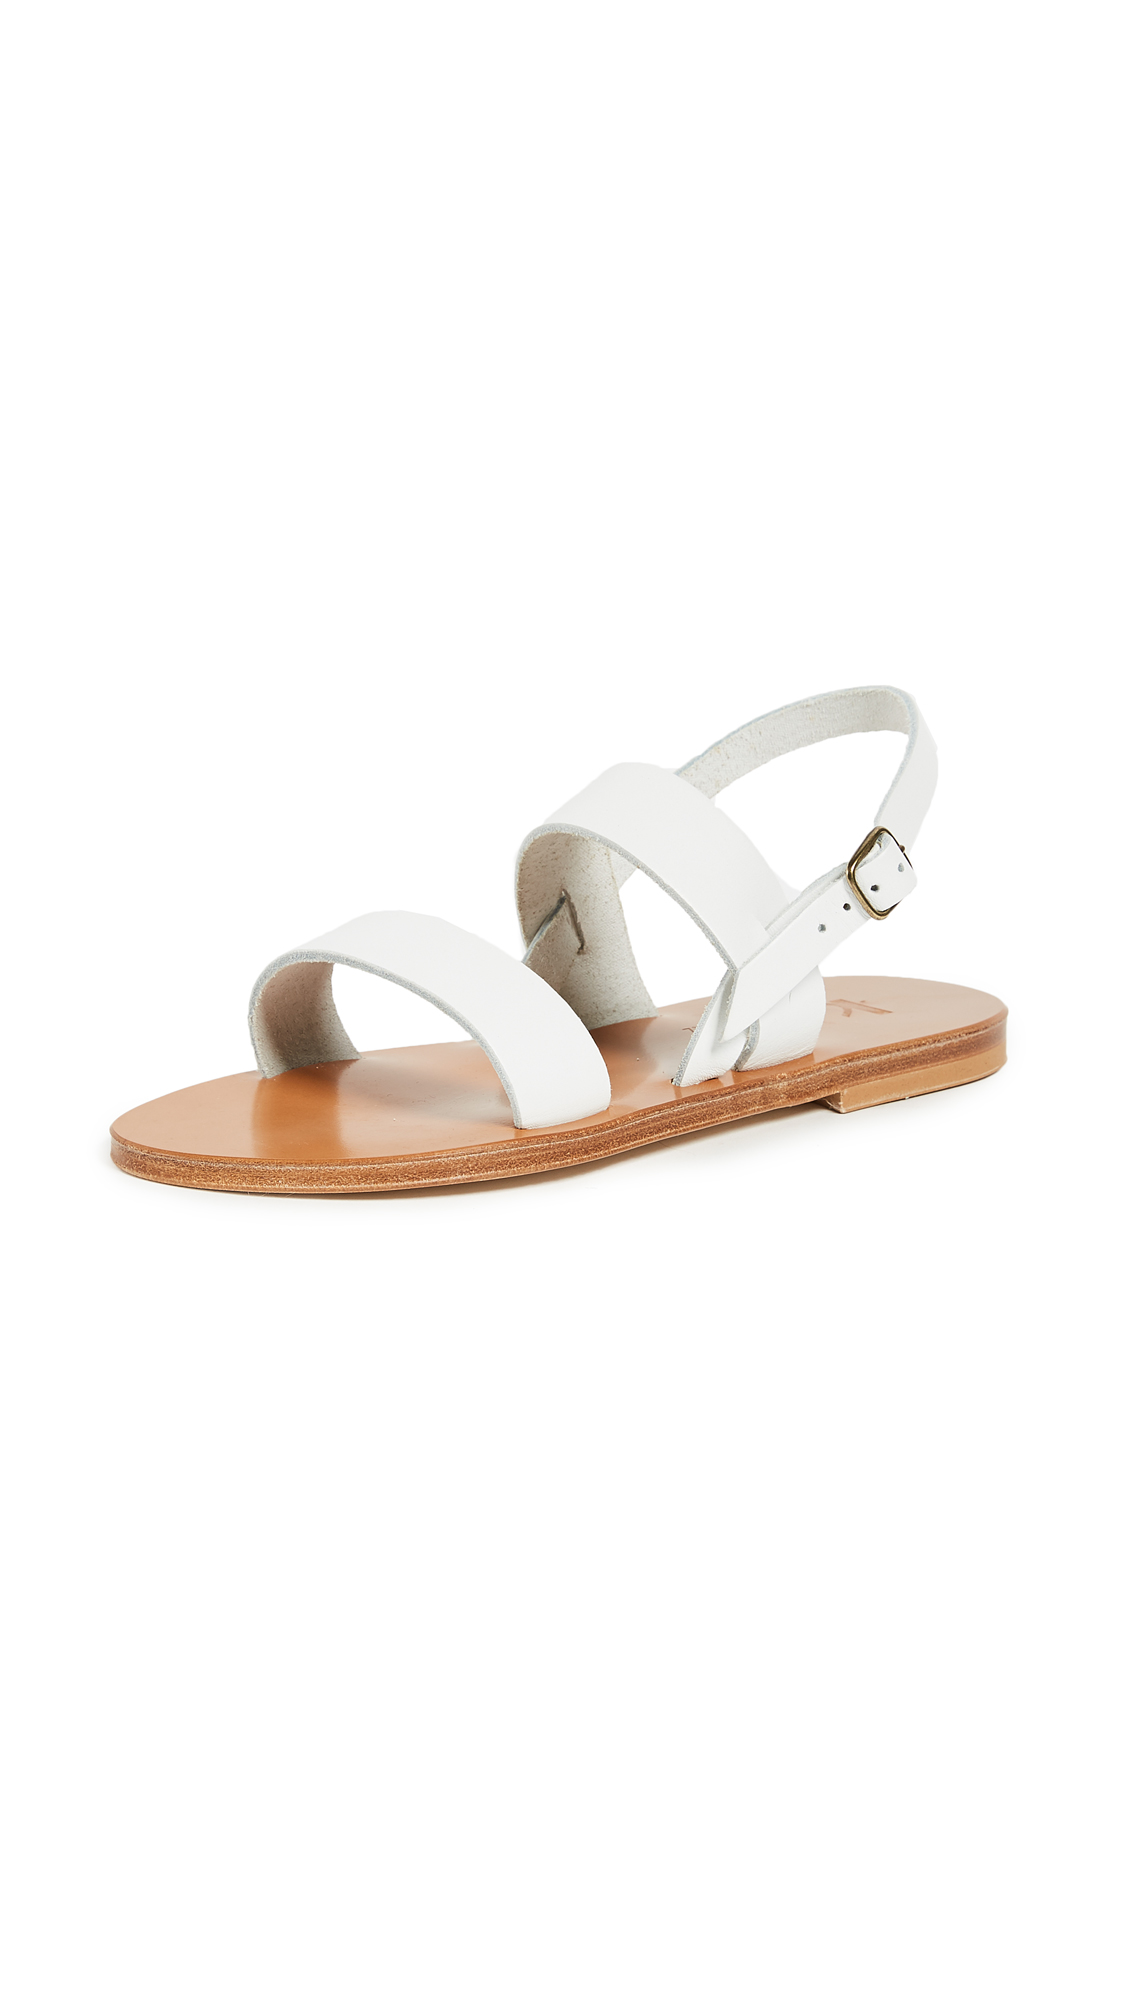 K. Jacques Iroko Sandals - Pul Blanc